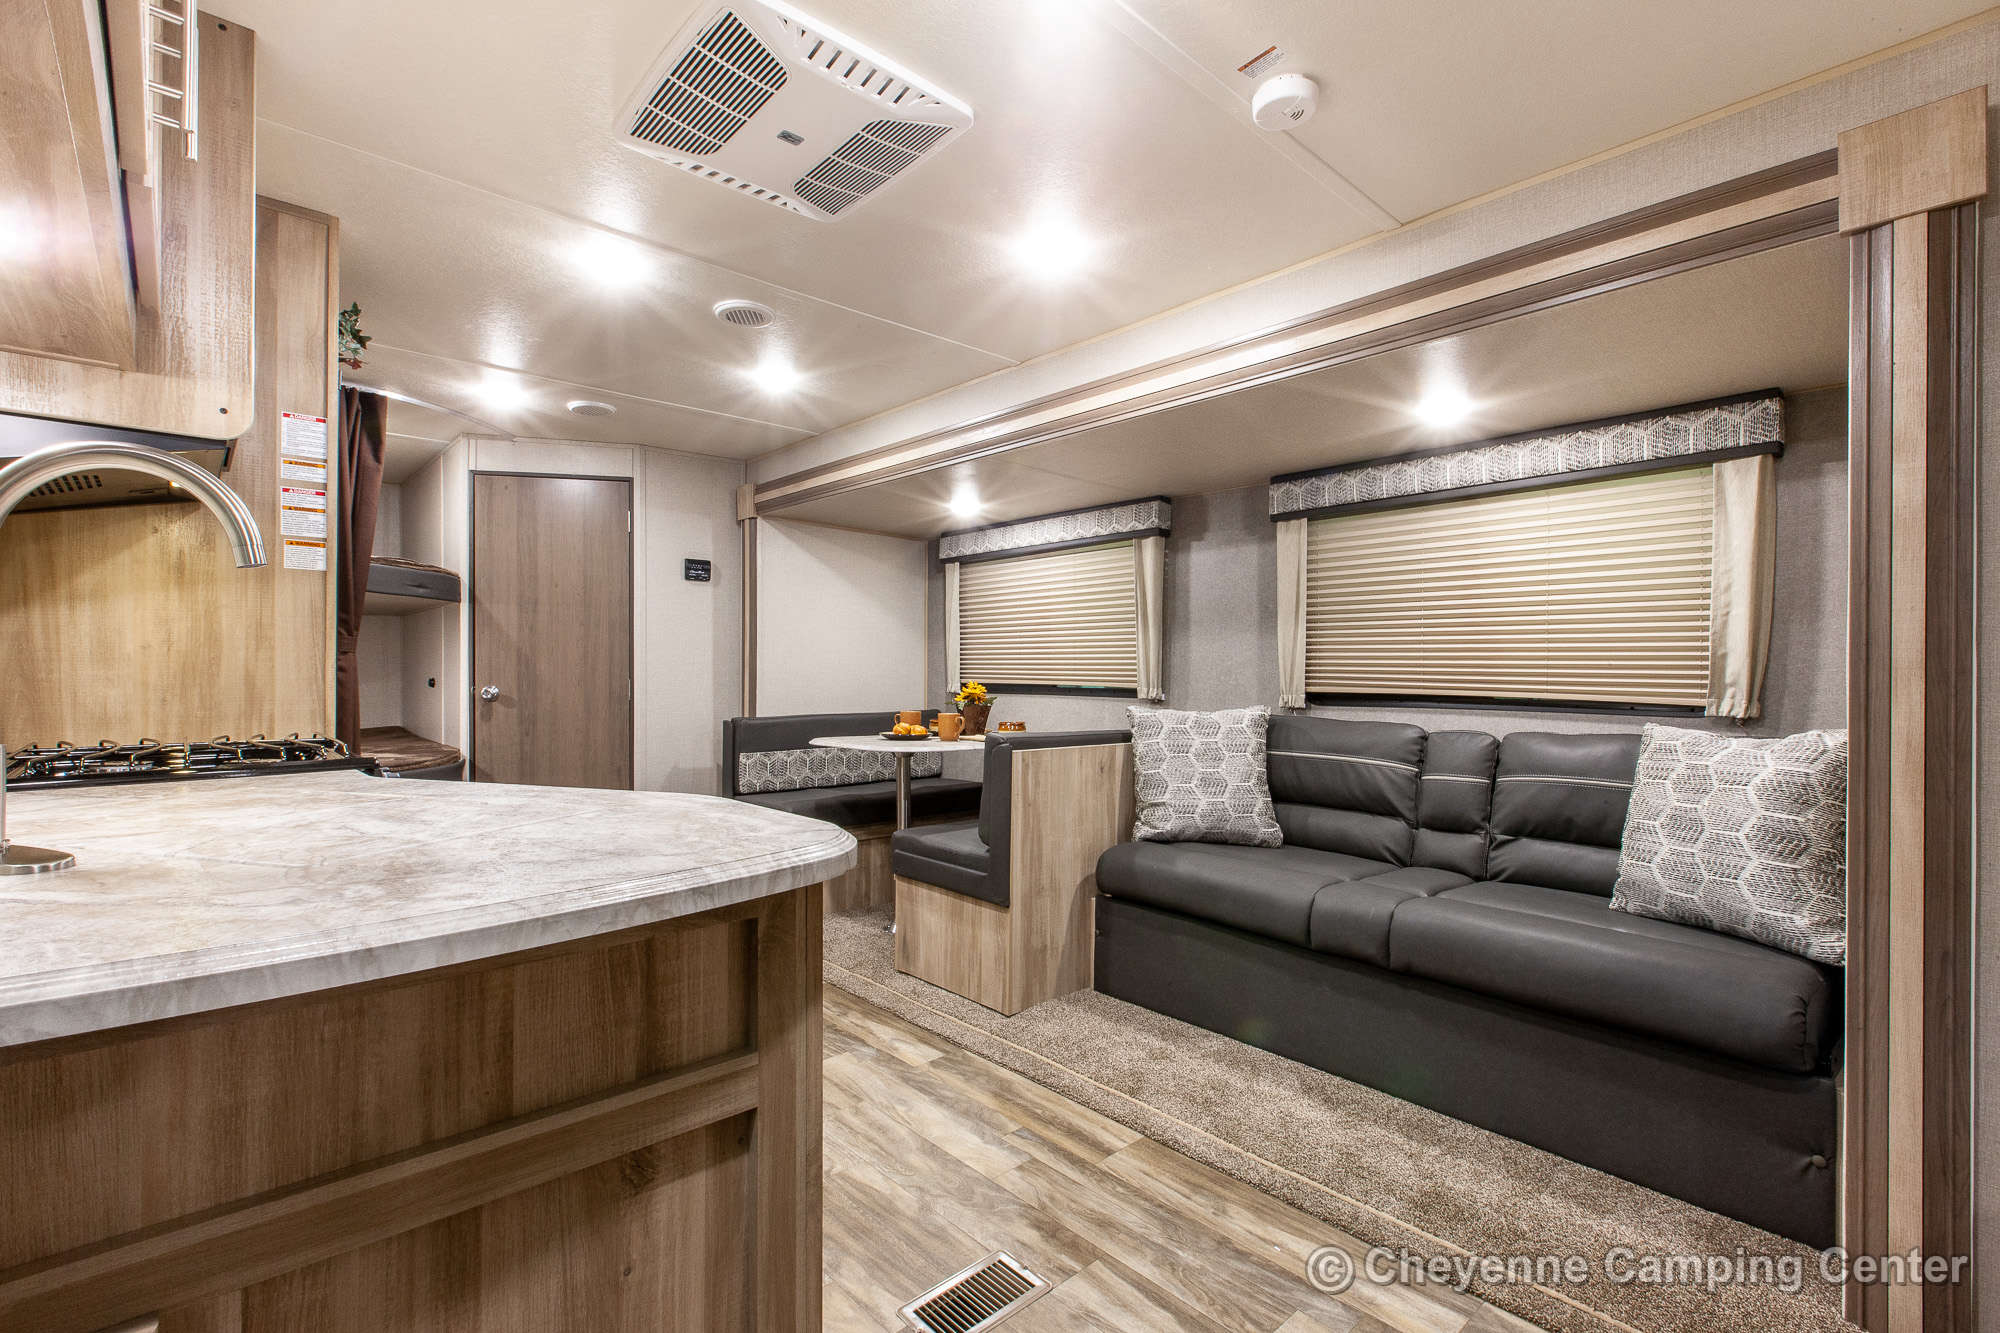 2021 Coachmen Catalina Summit Series 261BHS Bunkhouse Travel Trailer Interior Image